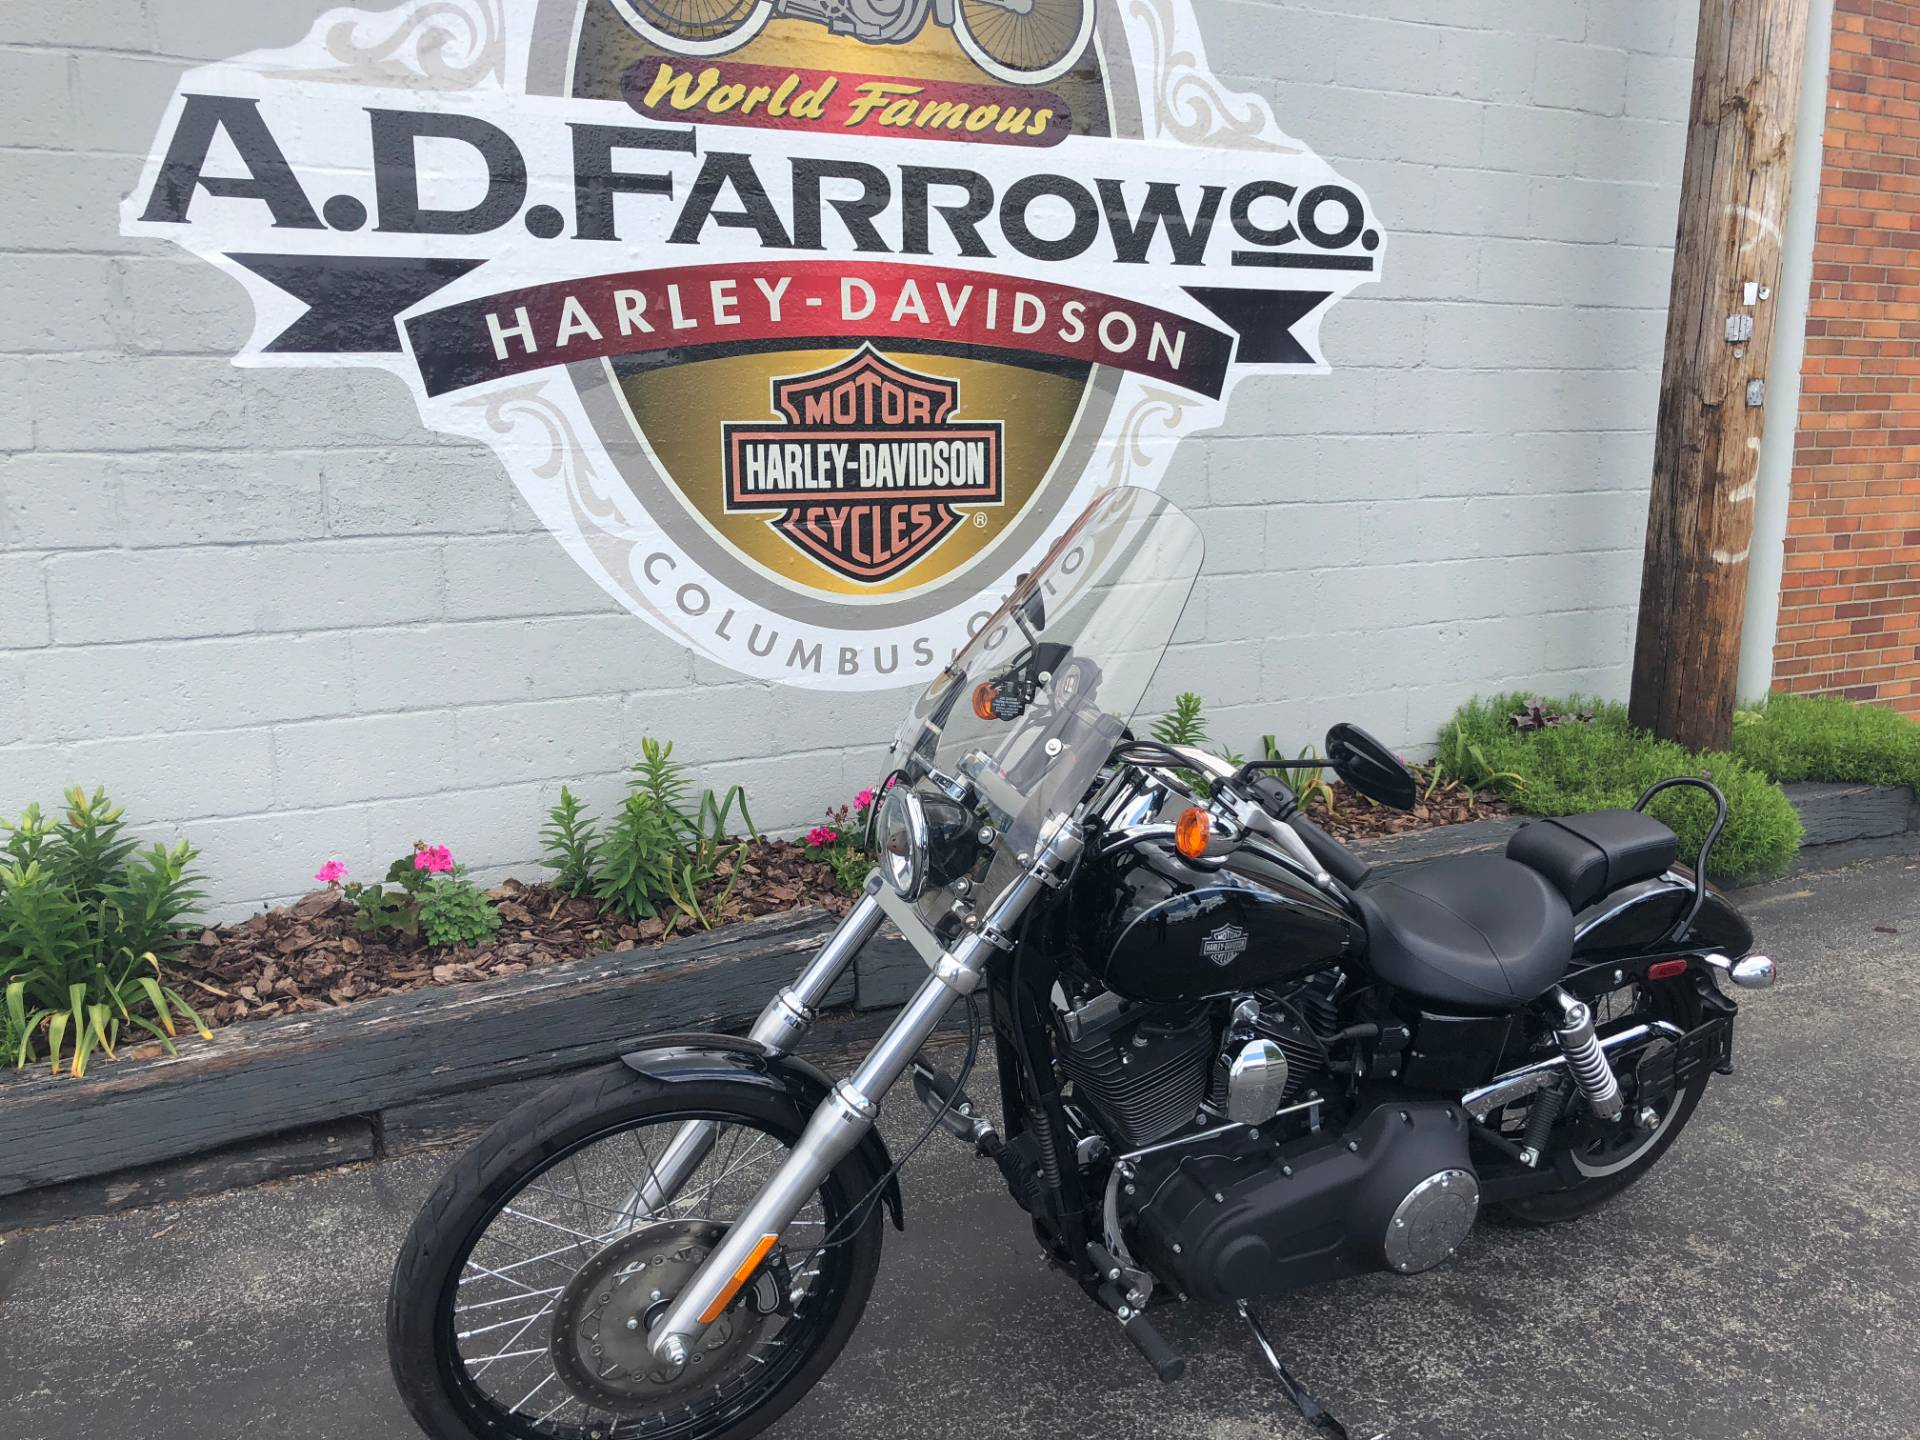 2014 Harley-Davidson FXDWG103 in Sunbury, Ohio - Photo 5